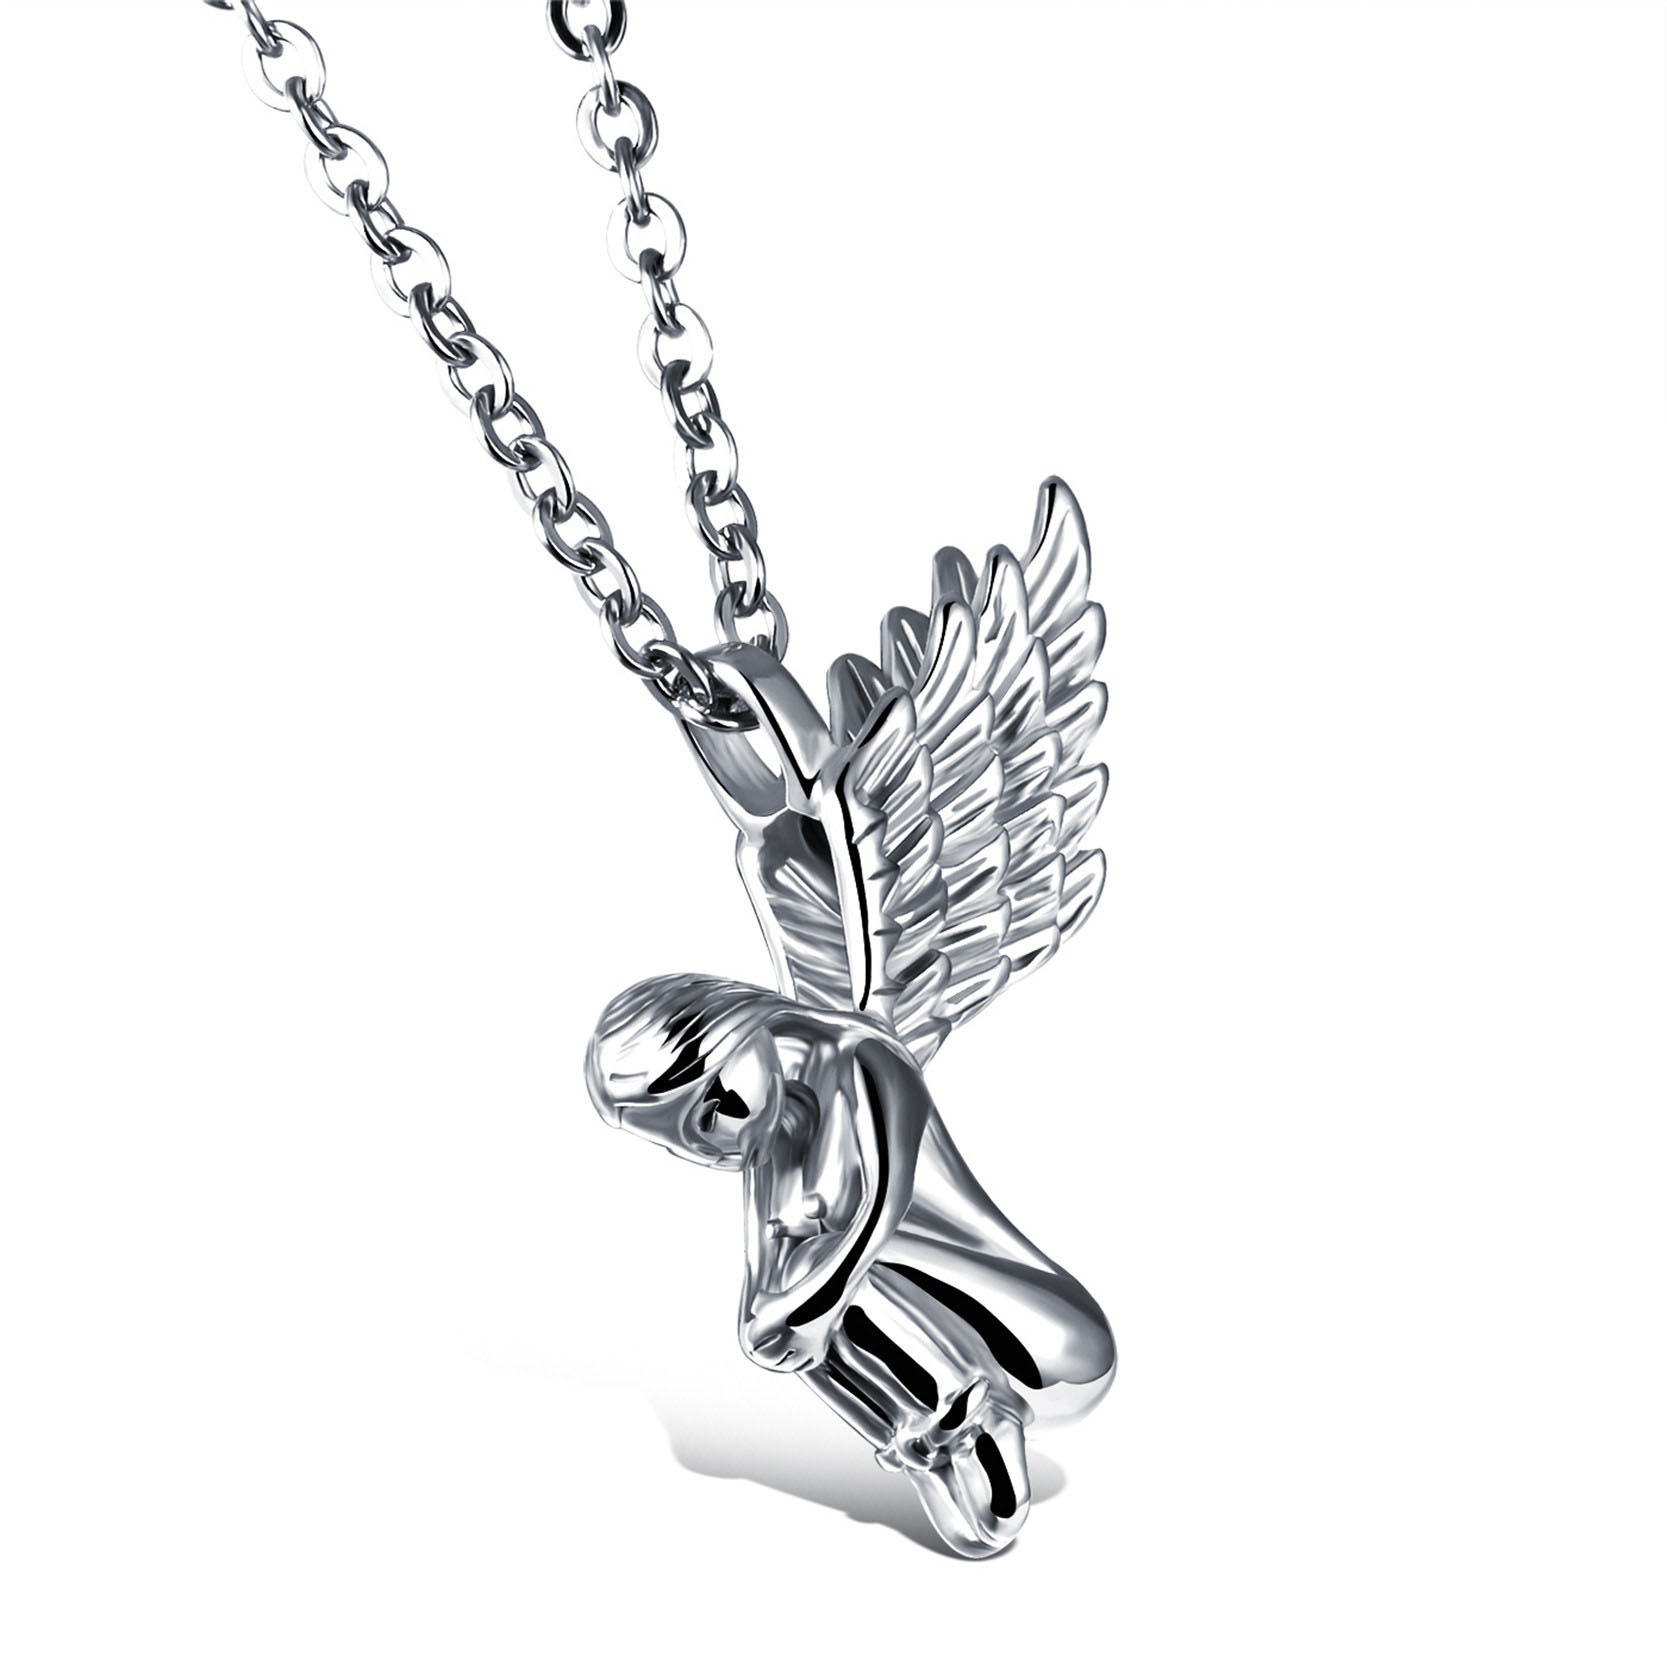 necklaces p diamond uk necklace co for silver fairy d childrens threelittlebears pendant